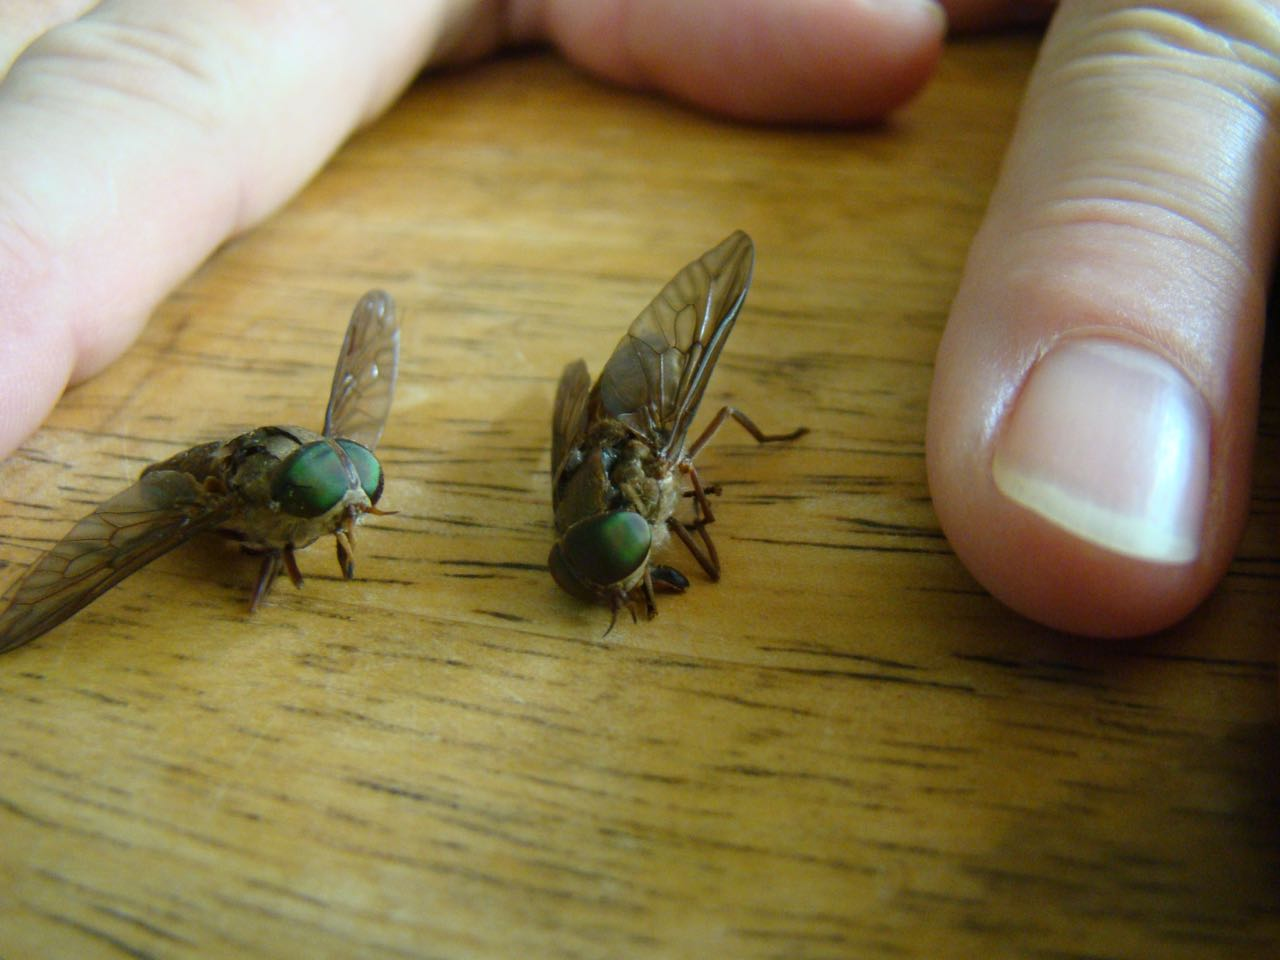 Horse Flies, March Flies  March Fly (Tabanidae family )